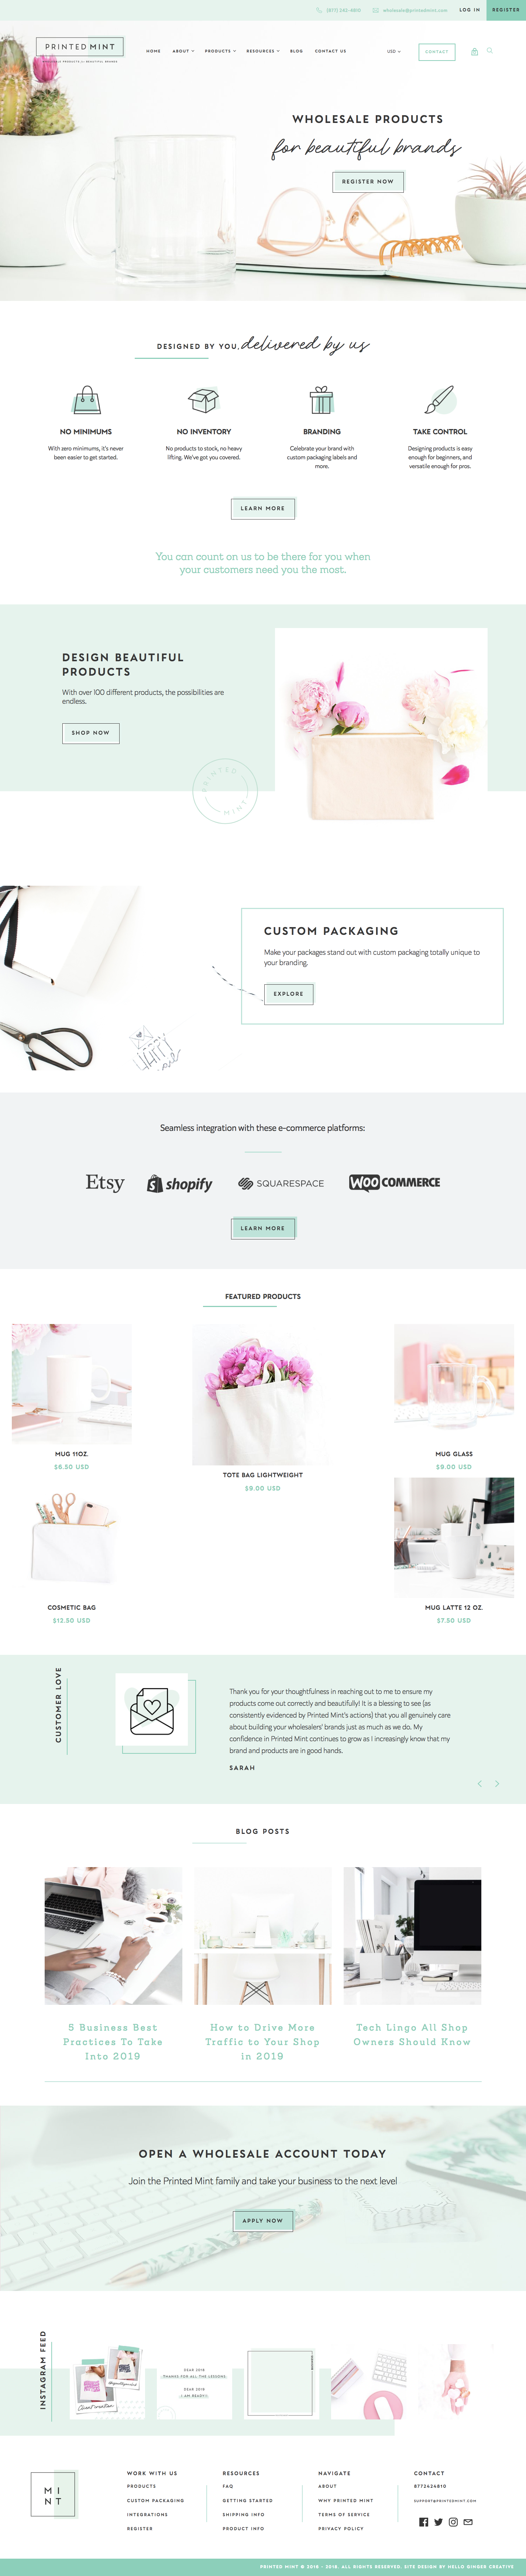 Printed Mint's Home Page - Choosing a variety stock photos that compliment your brand colors (main + secondary) and brand style will help you to create a memorable and cohesive visual presence.